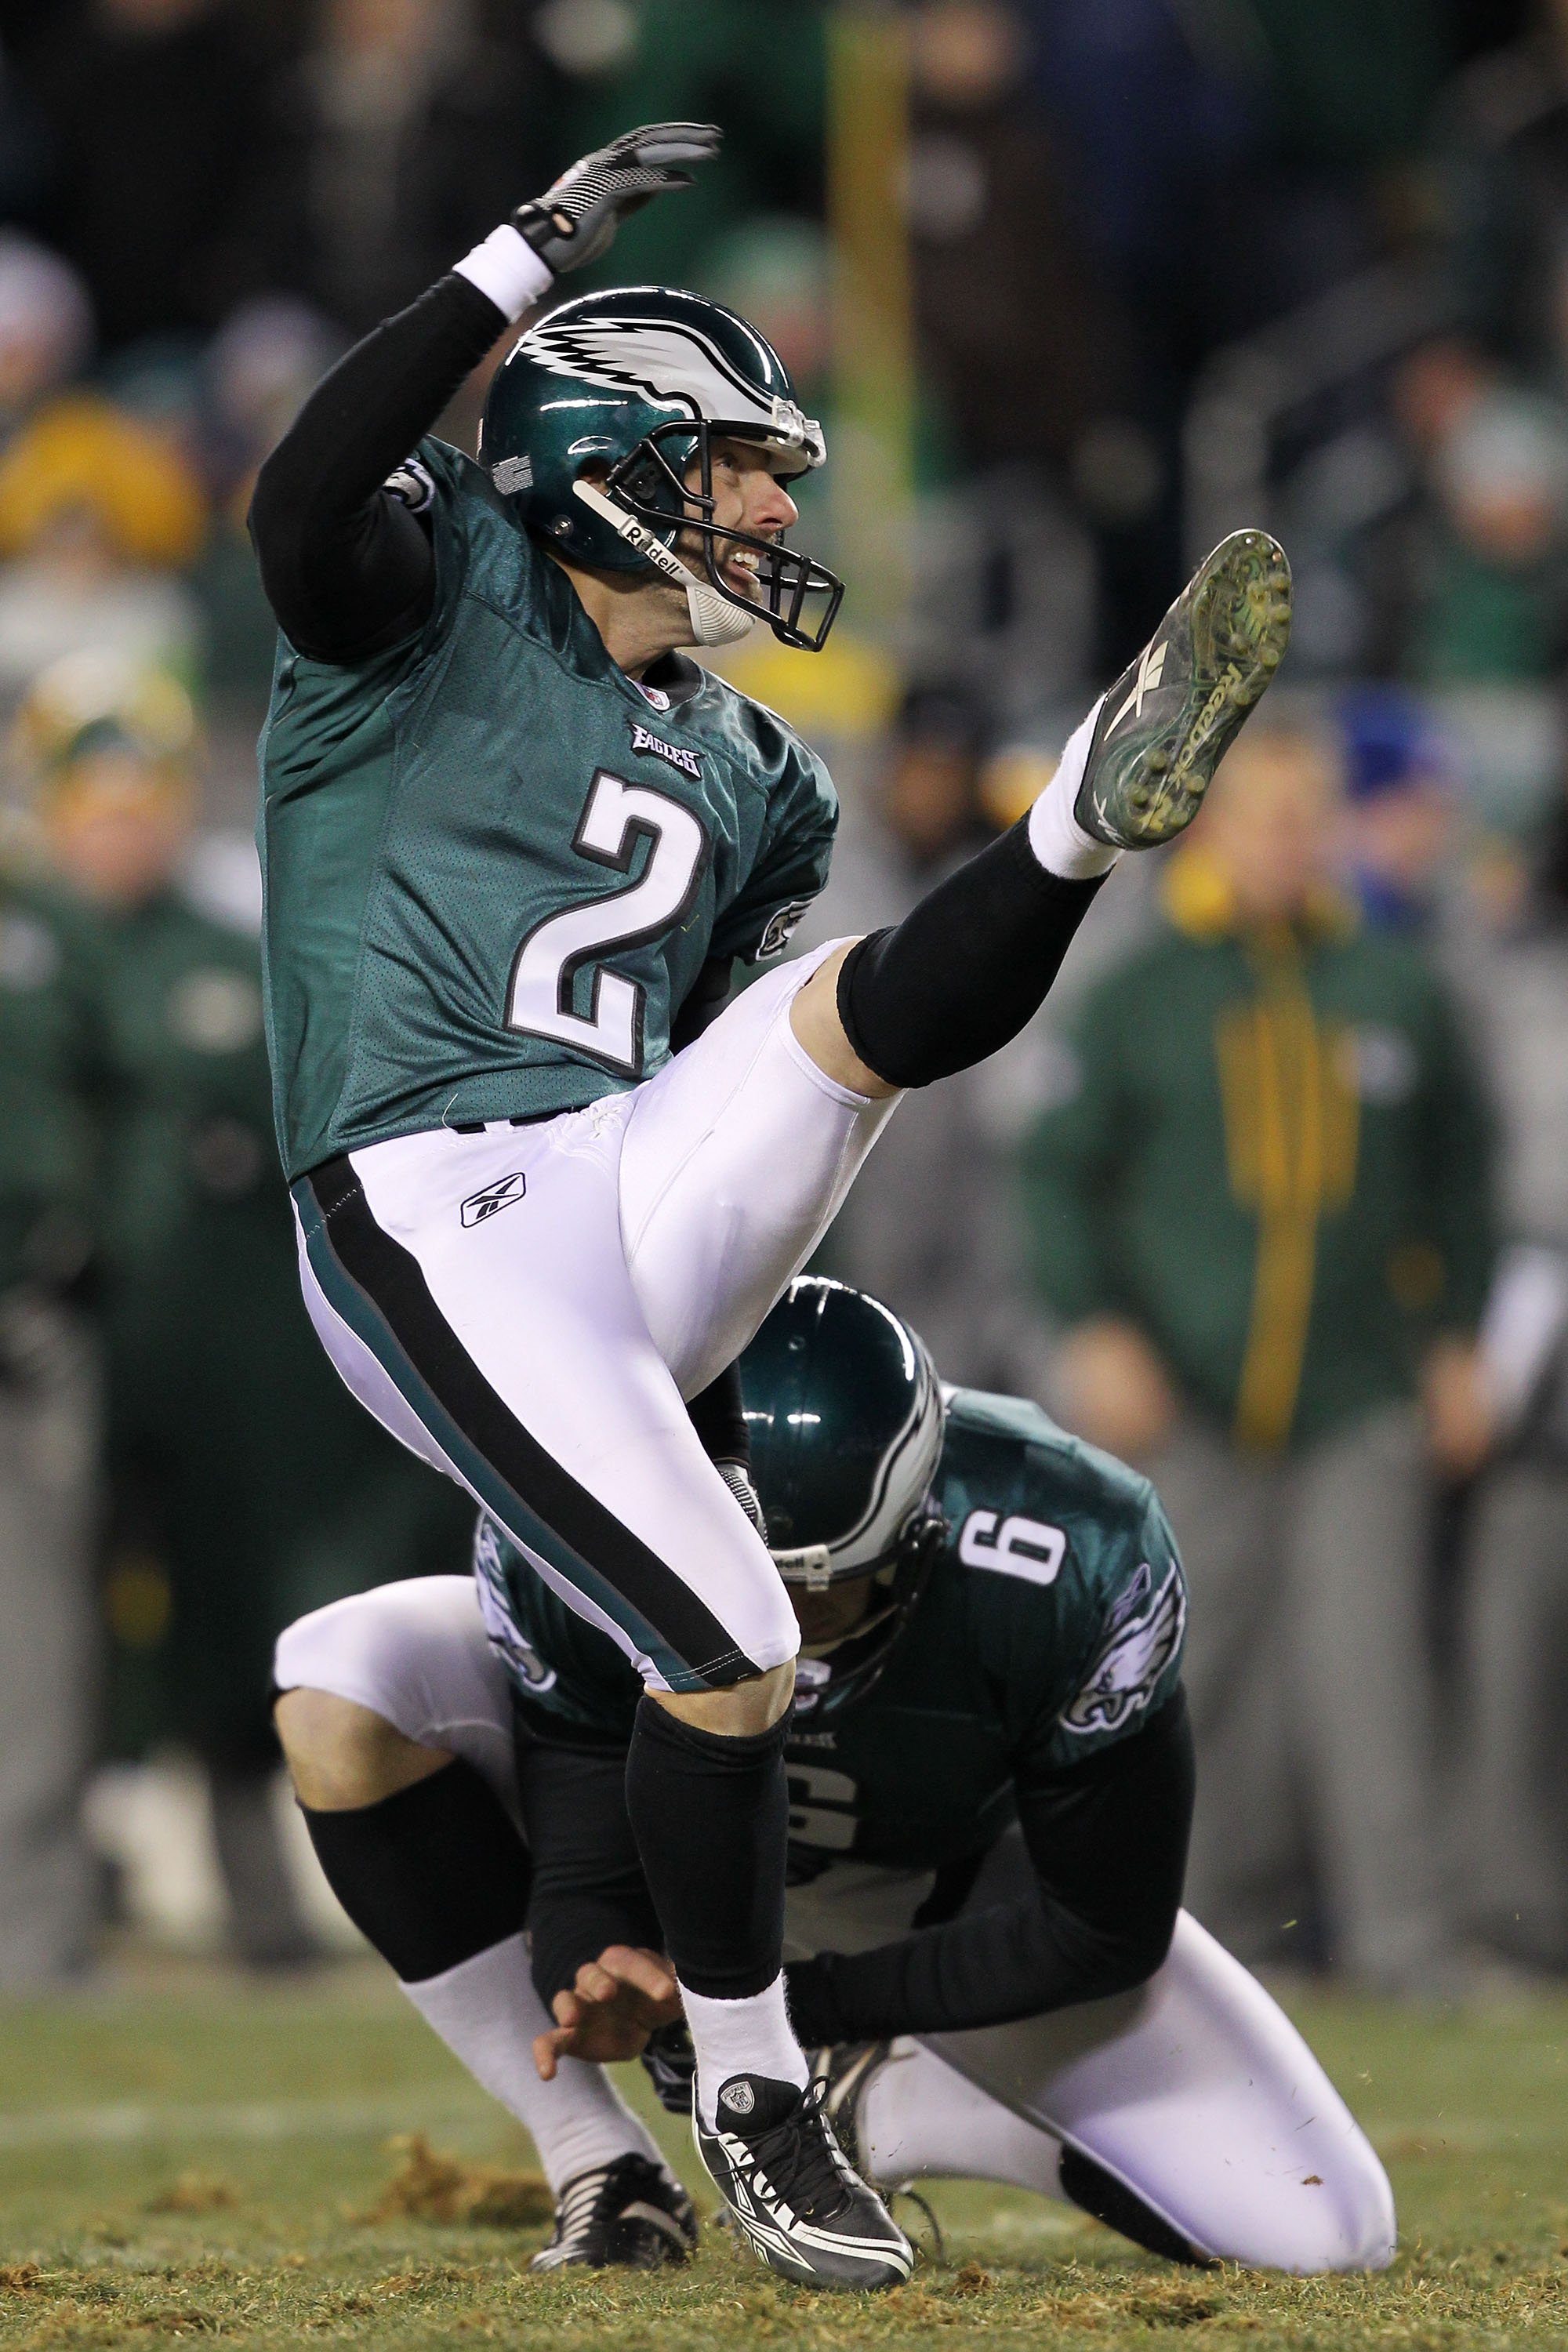 cda980c5f13 Philadelphia Eagles: Top 50 Players in Franchise History | Bleacher ...